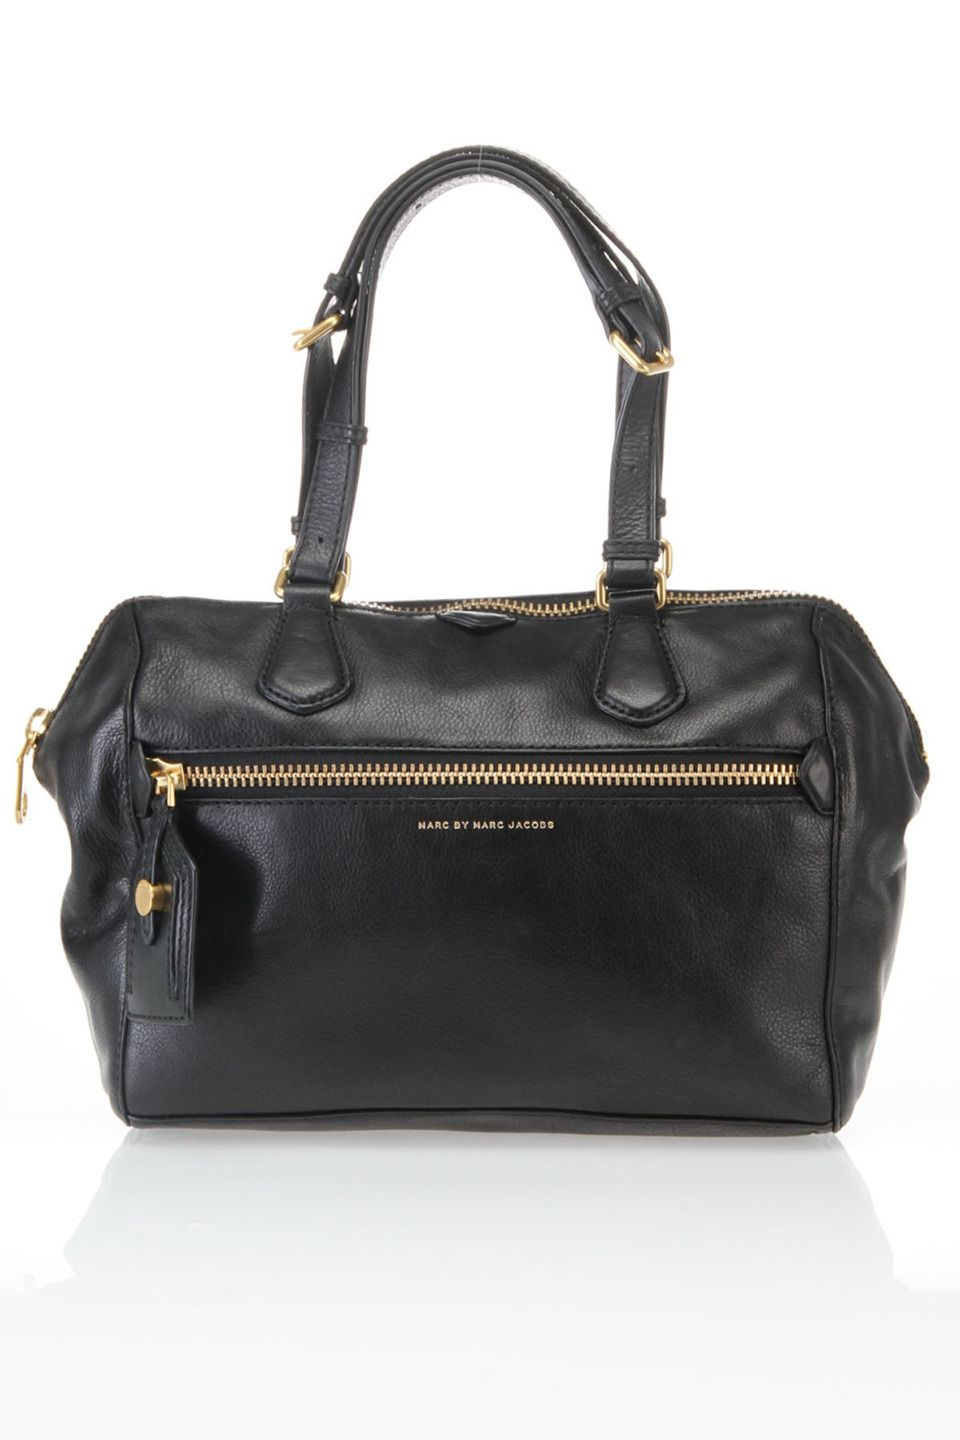 34f103f65e Marc by Marc Jacobs Sloan Ranger Handbag In Black - Beyond the Rack ...